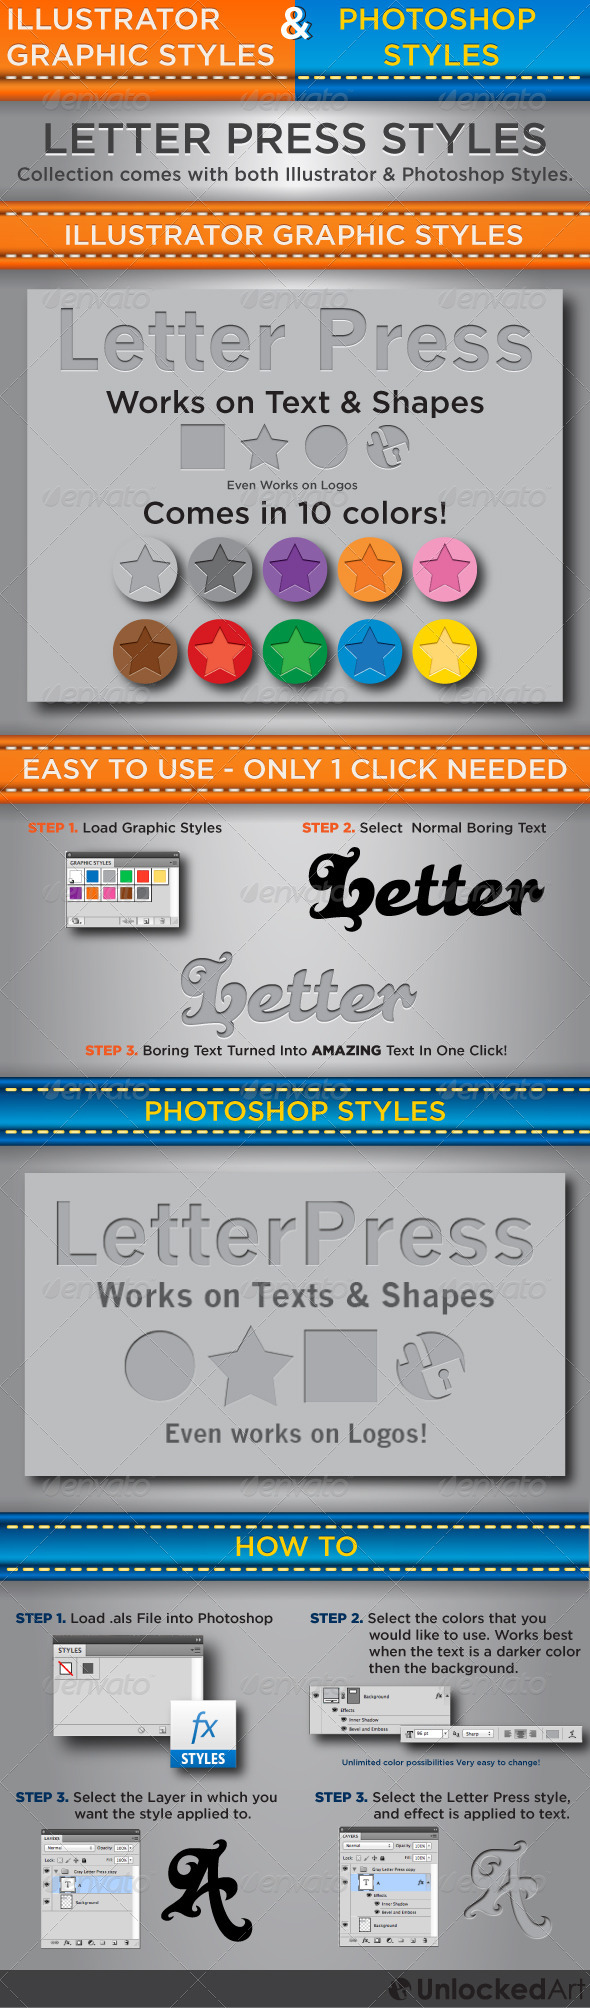 GraphicRiver Letter Press Styles Illustrator & Photoshop 4476783